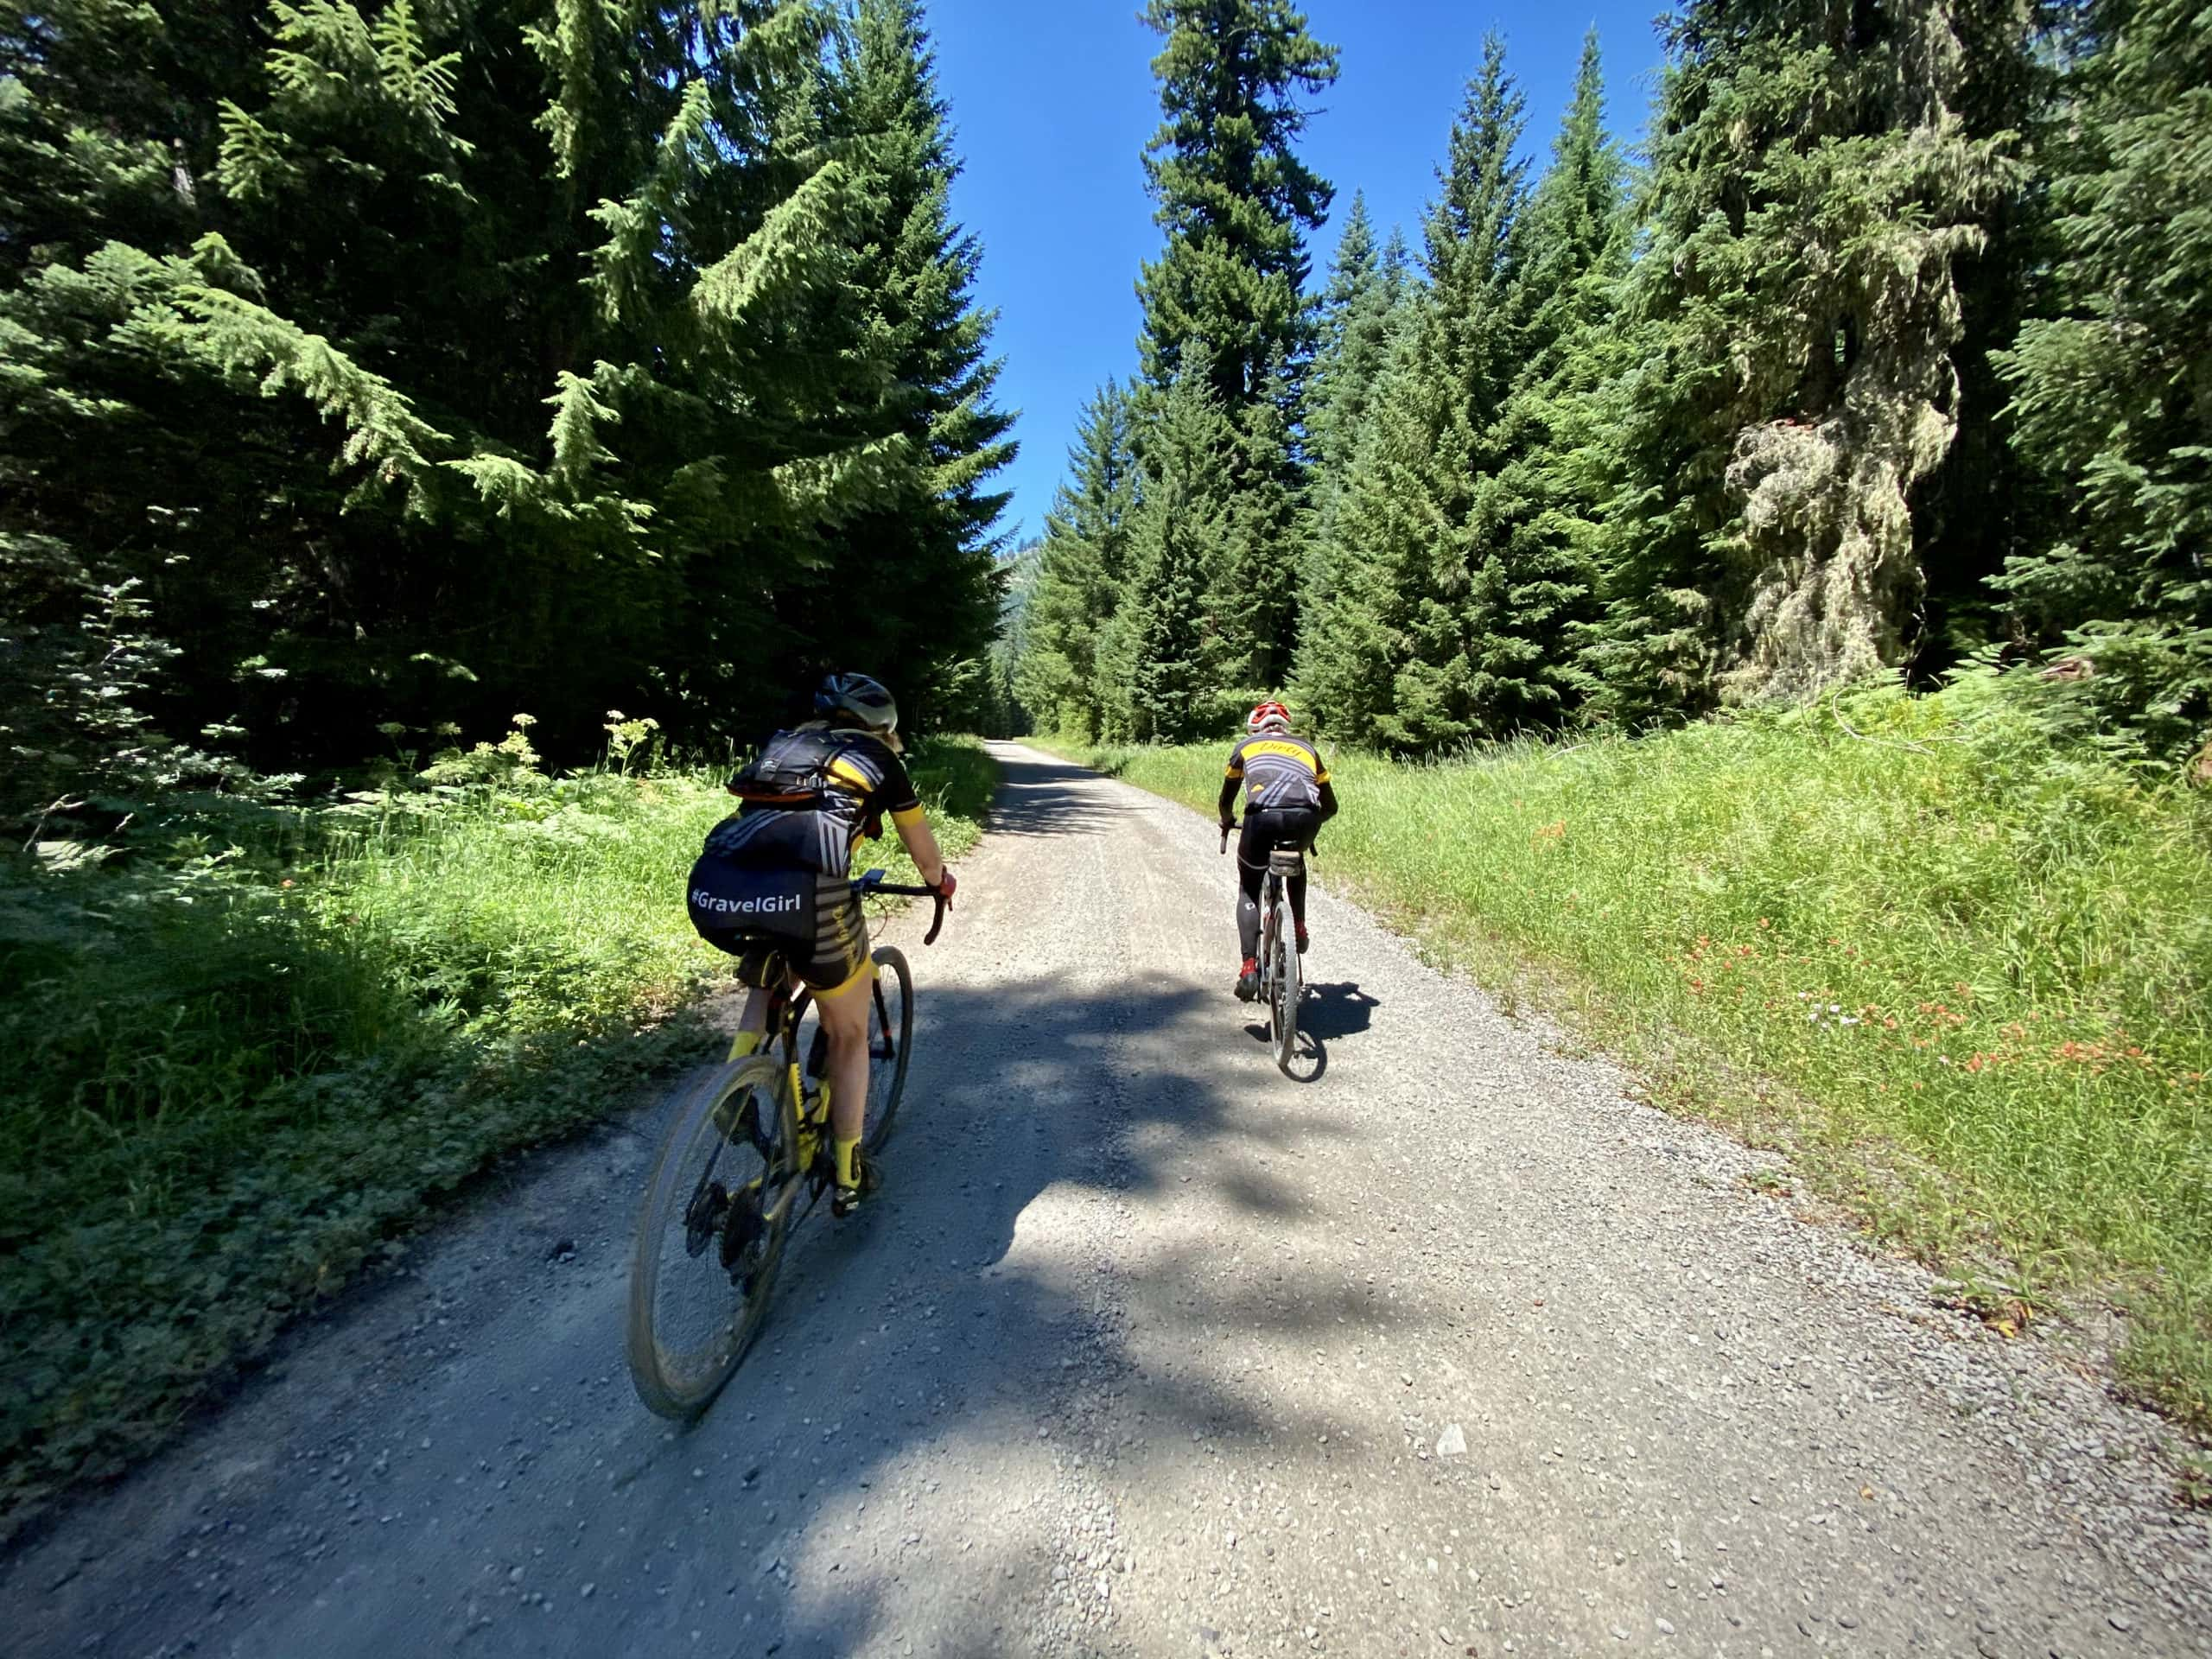 Two gravel cyclists on NF 23, chasing the shade. Near Oakridge, OR.